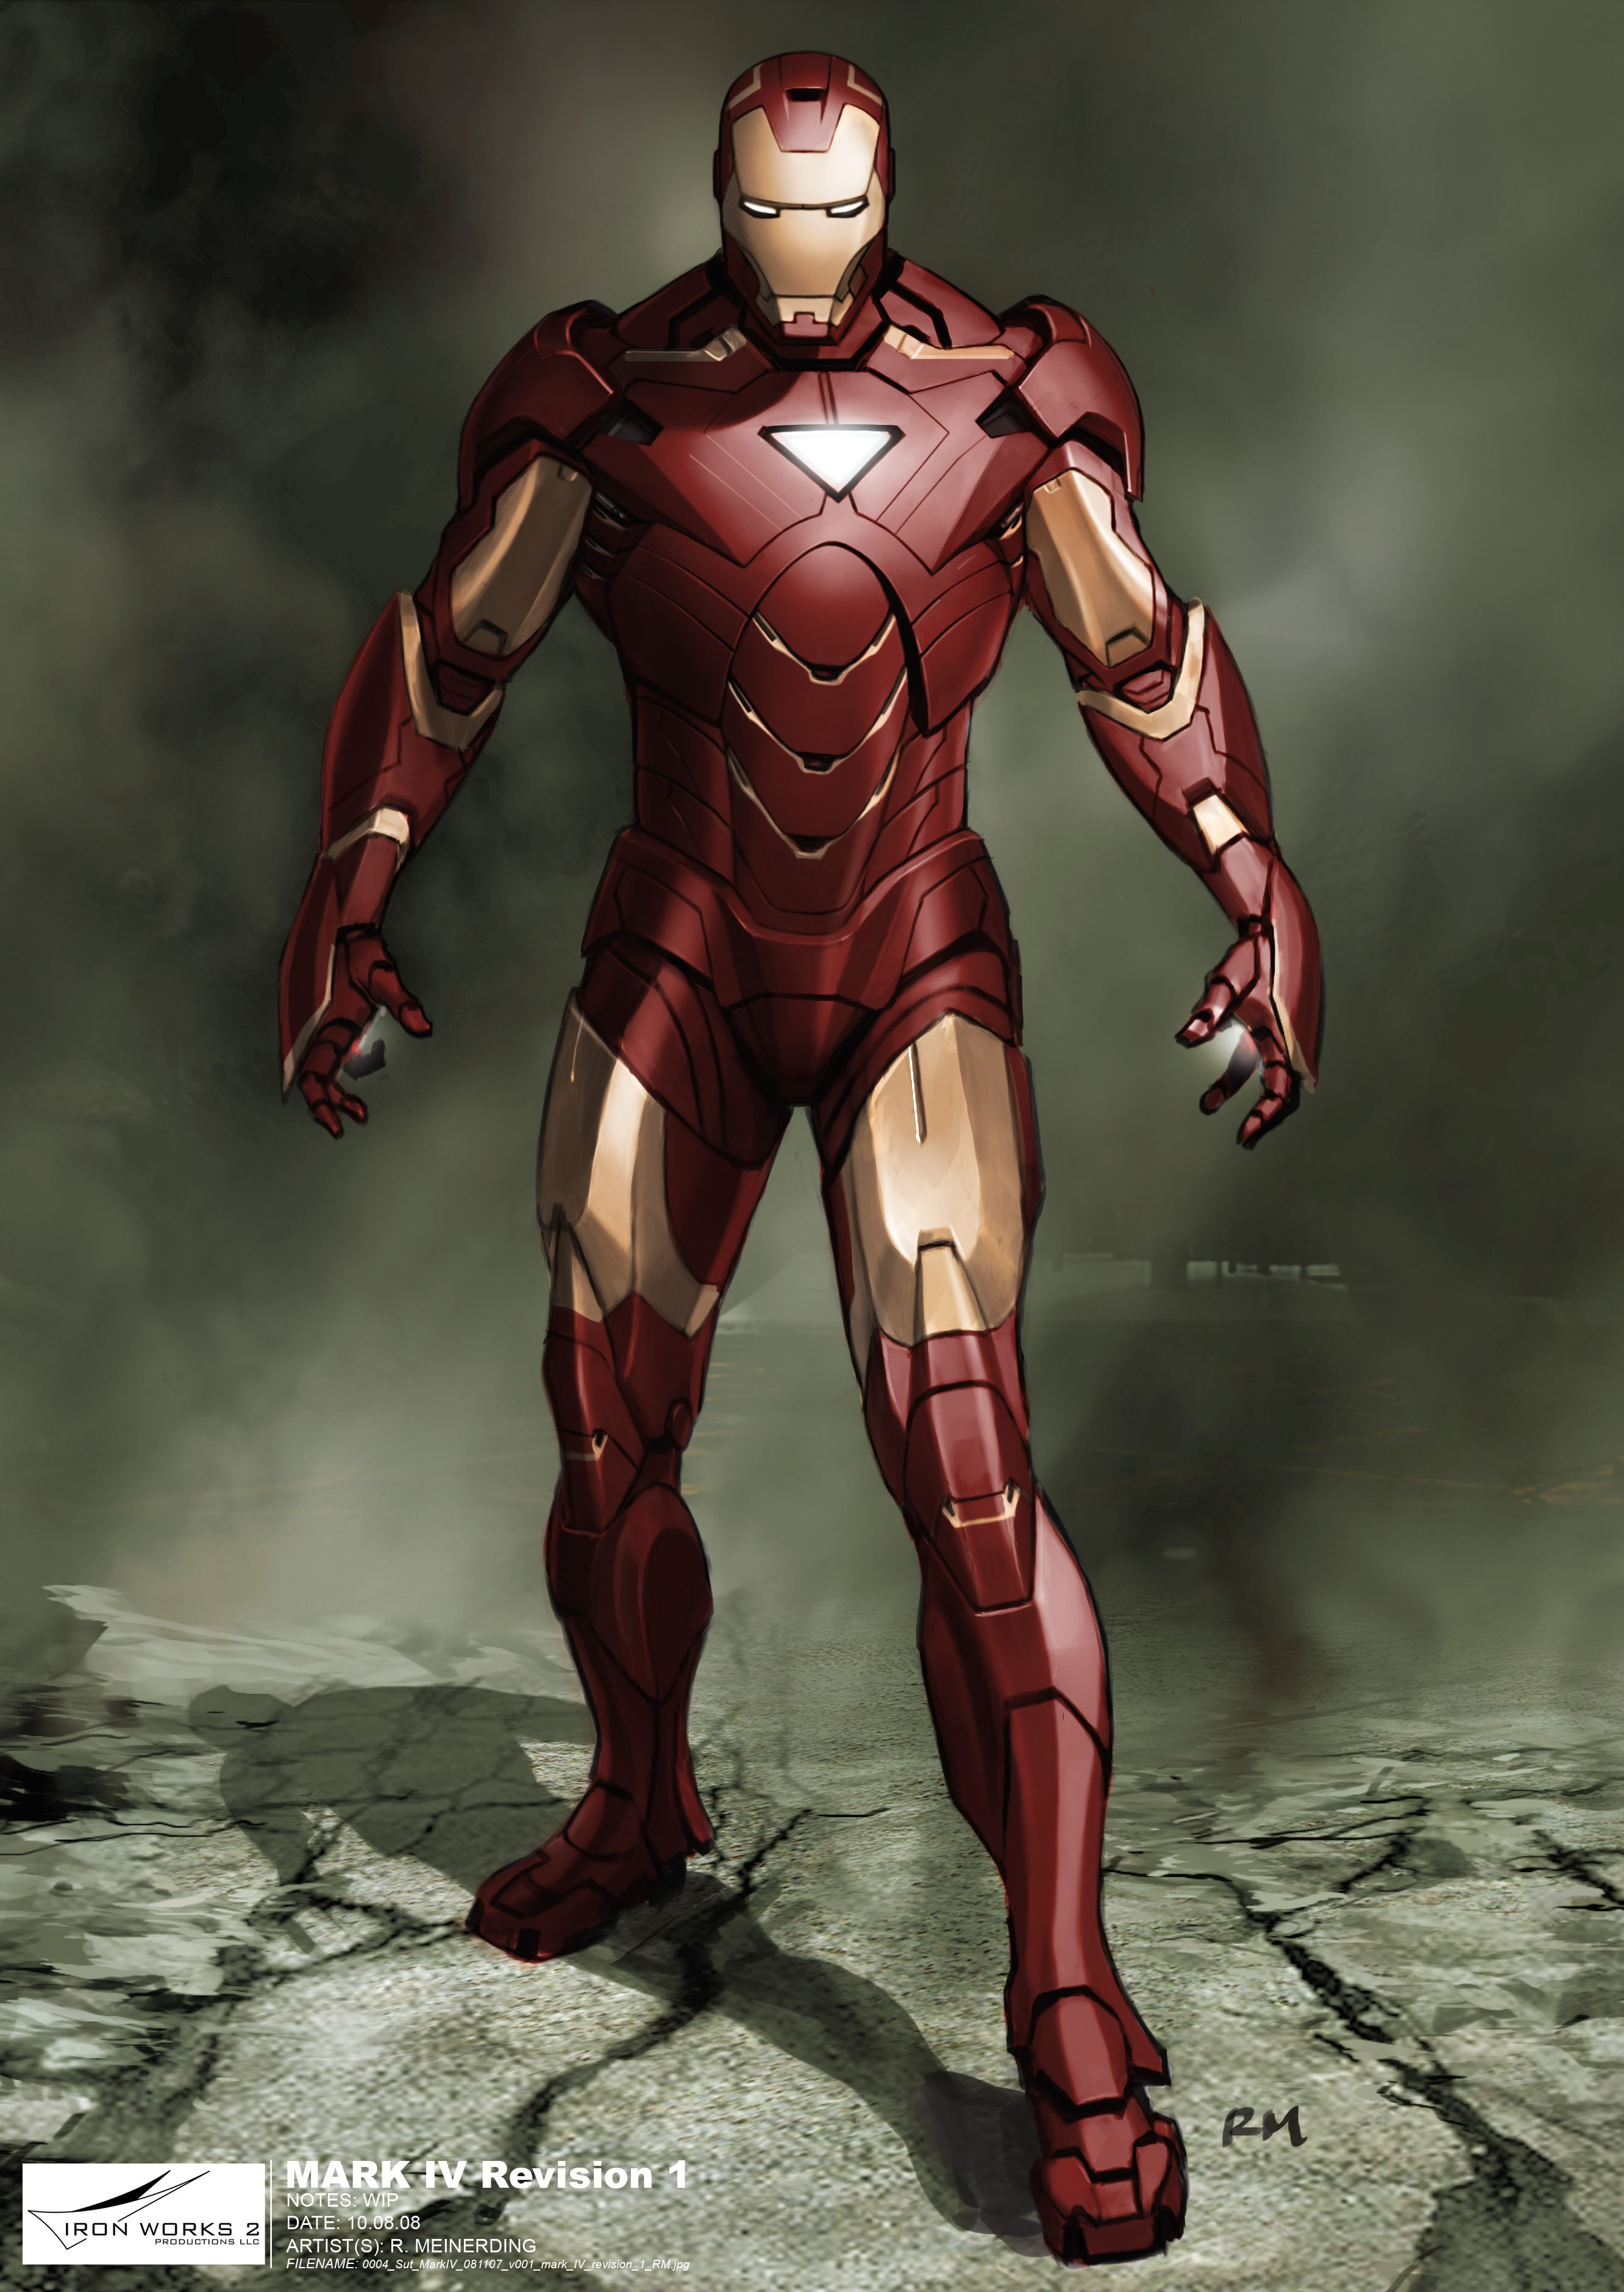 Iron Man concept art HD Wallpaper